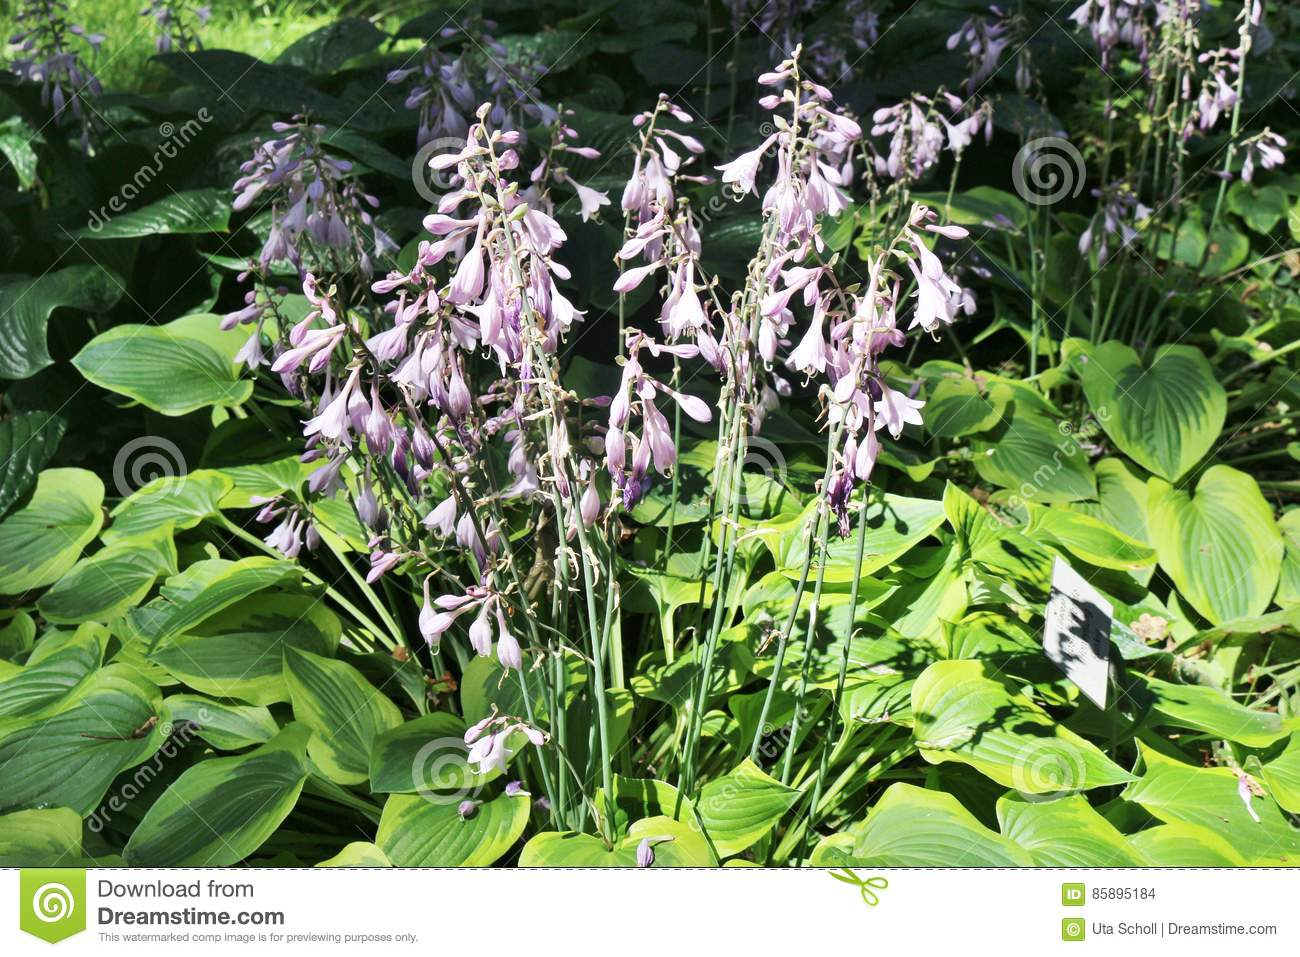 Hosta Flowers With Pink Blossoms And Large Green And Yellow Leaves